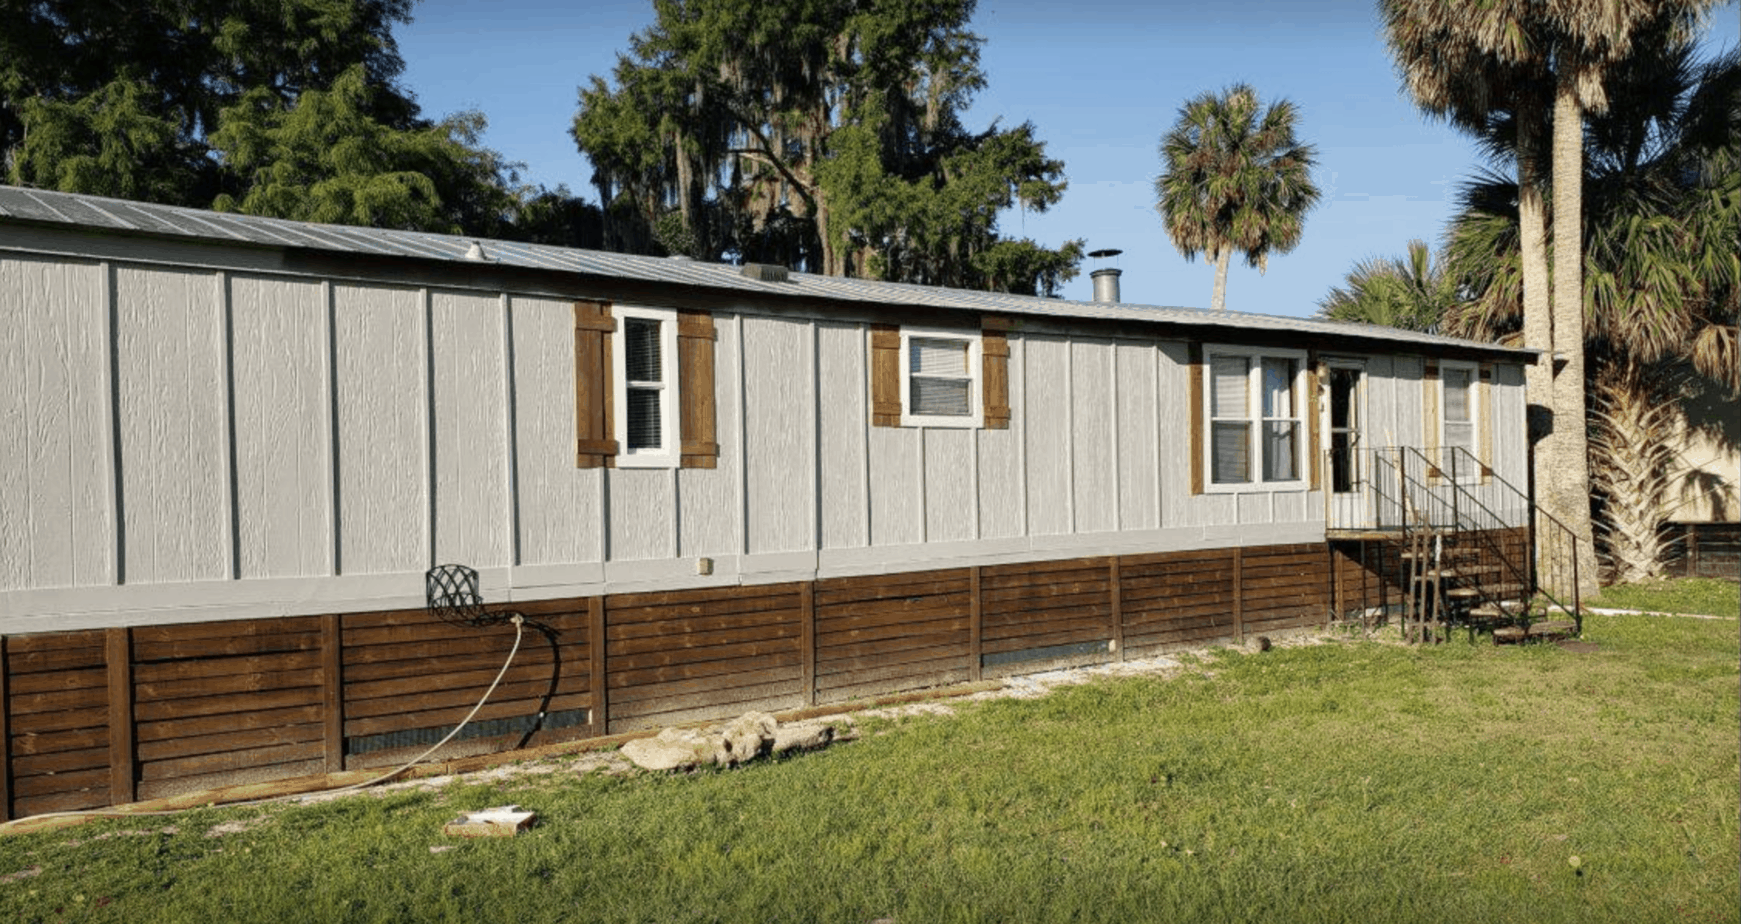 Single Wide Manufactured Home Exterior Remodeling Ideas - Siding, Underpinning4